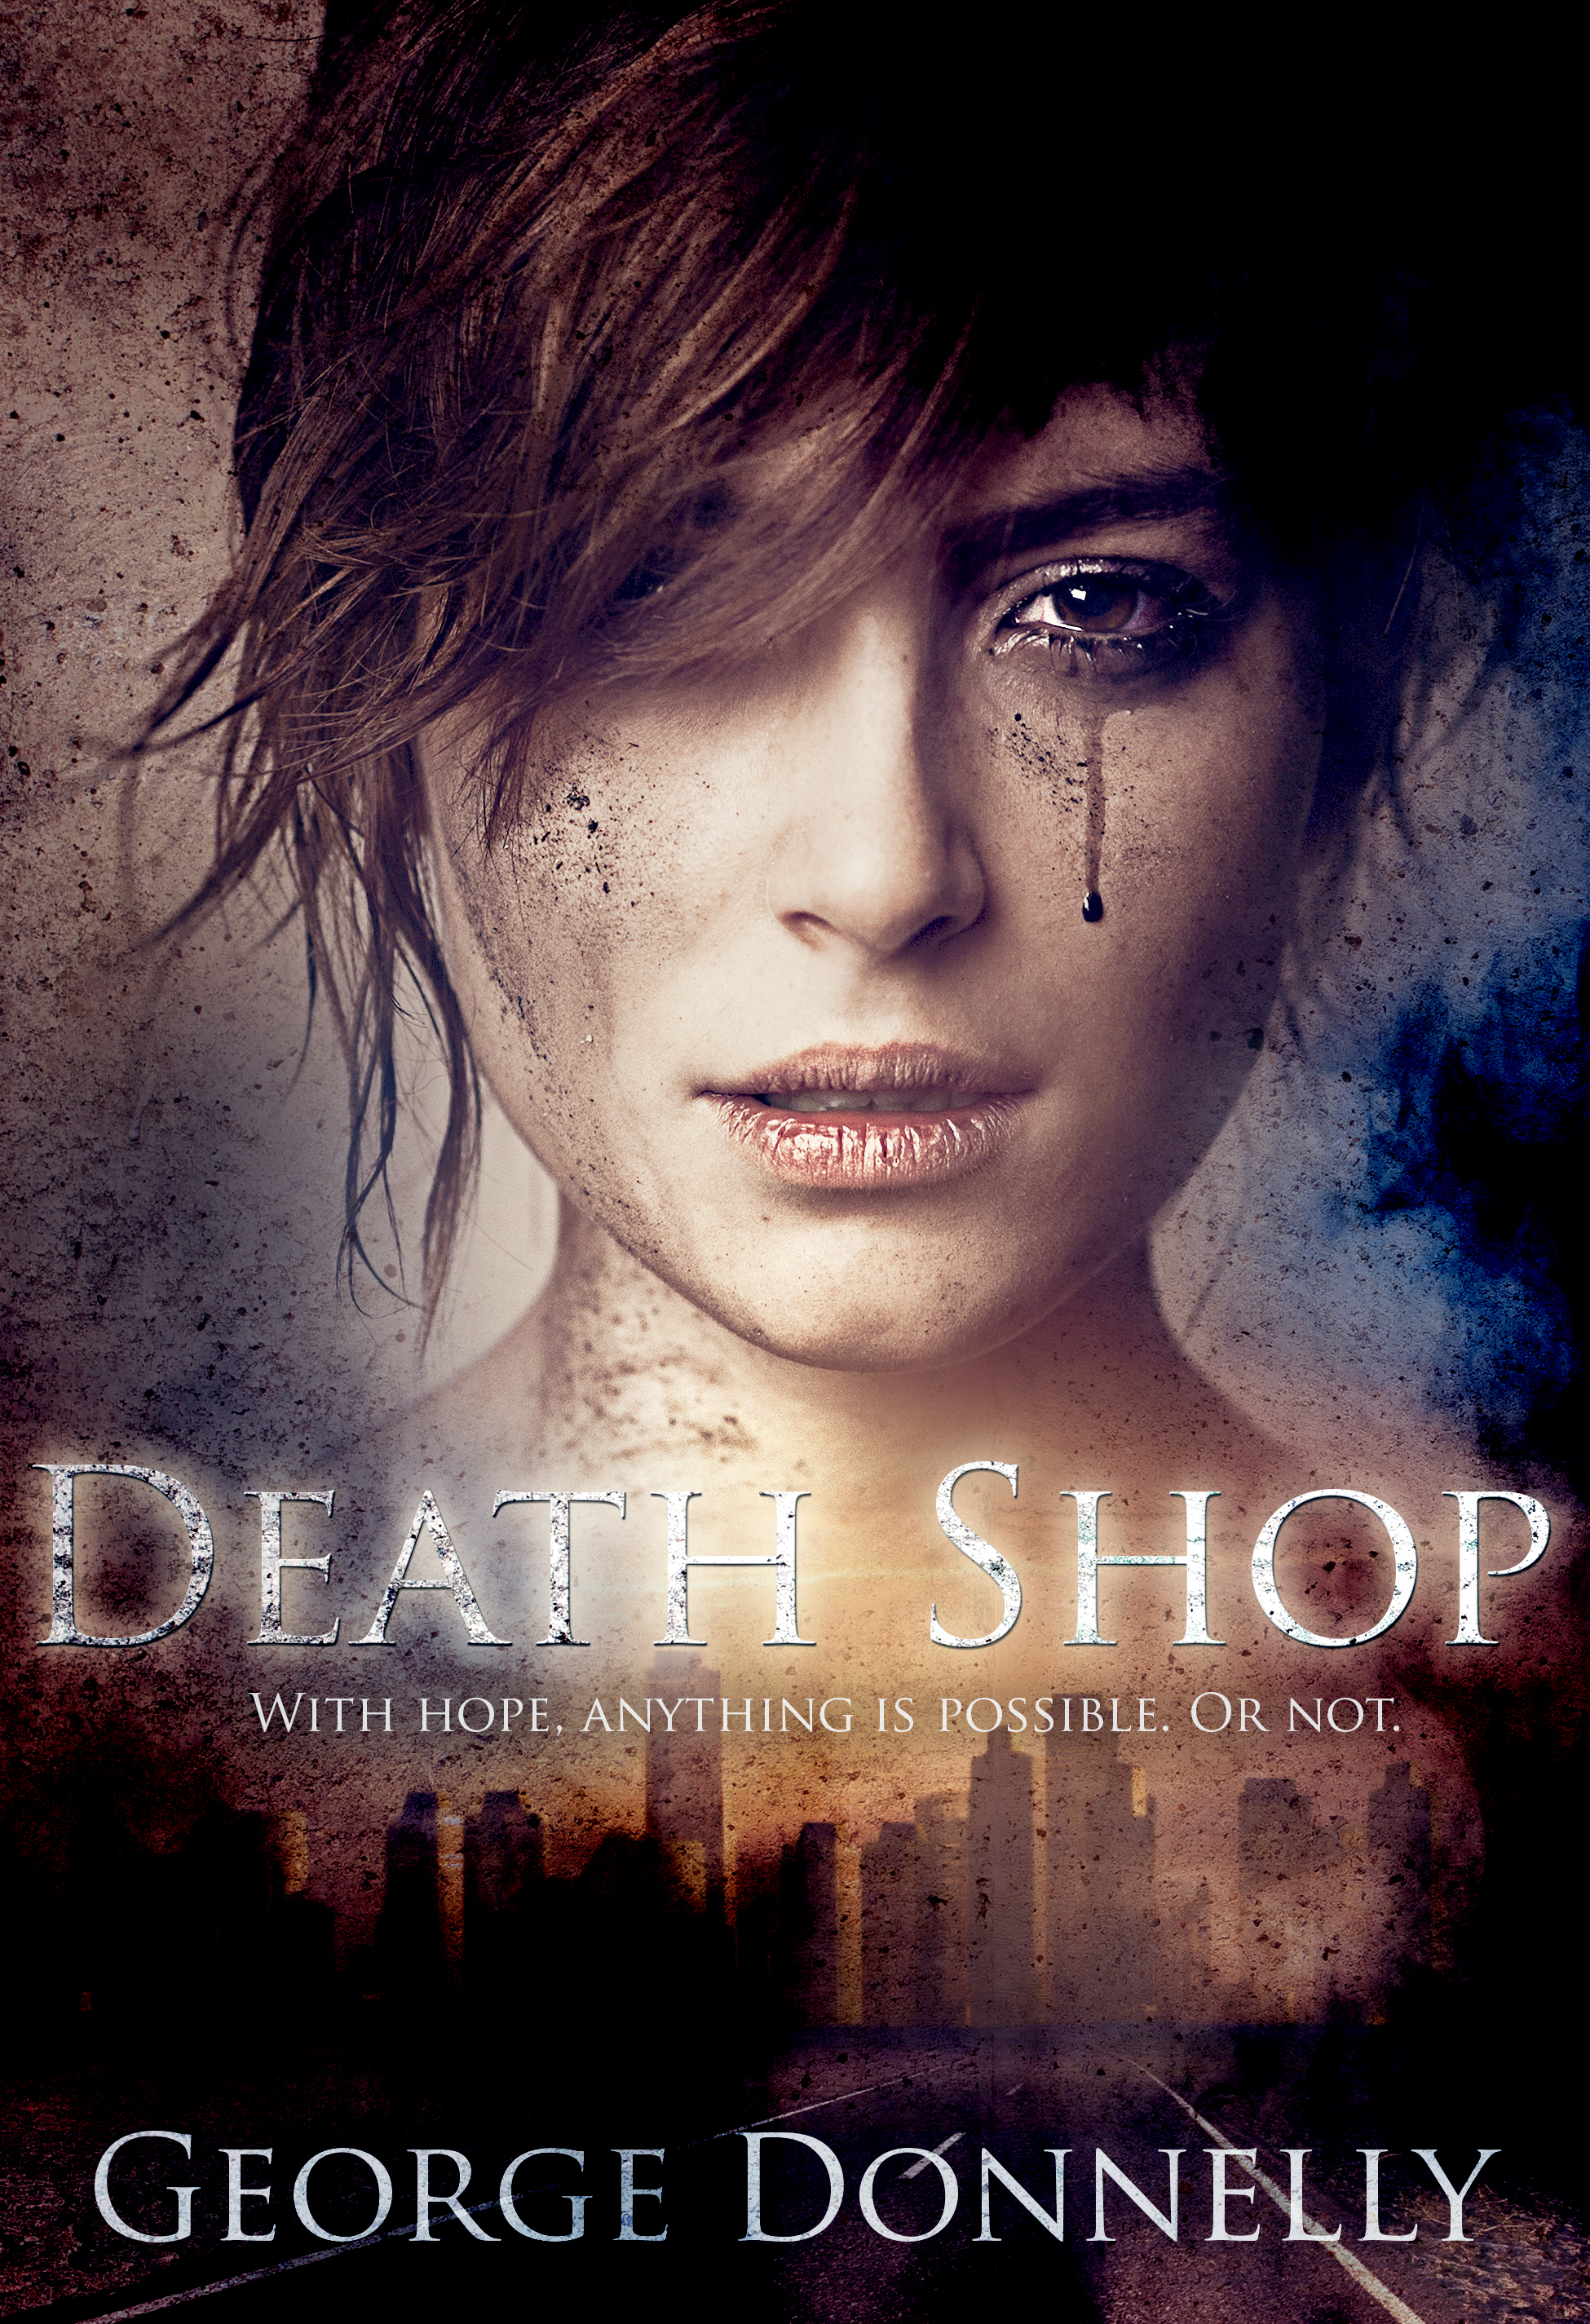 Death Shop by George Donnelly